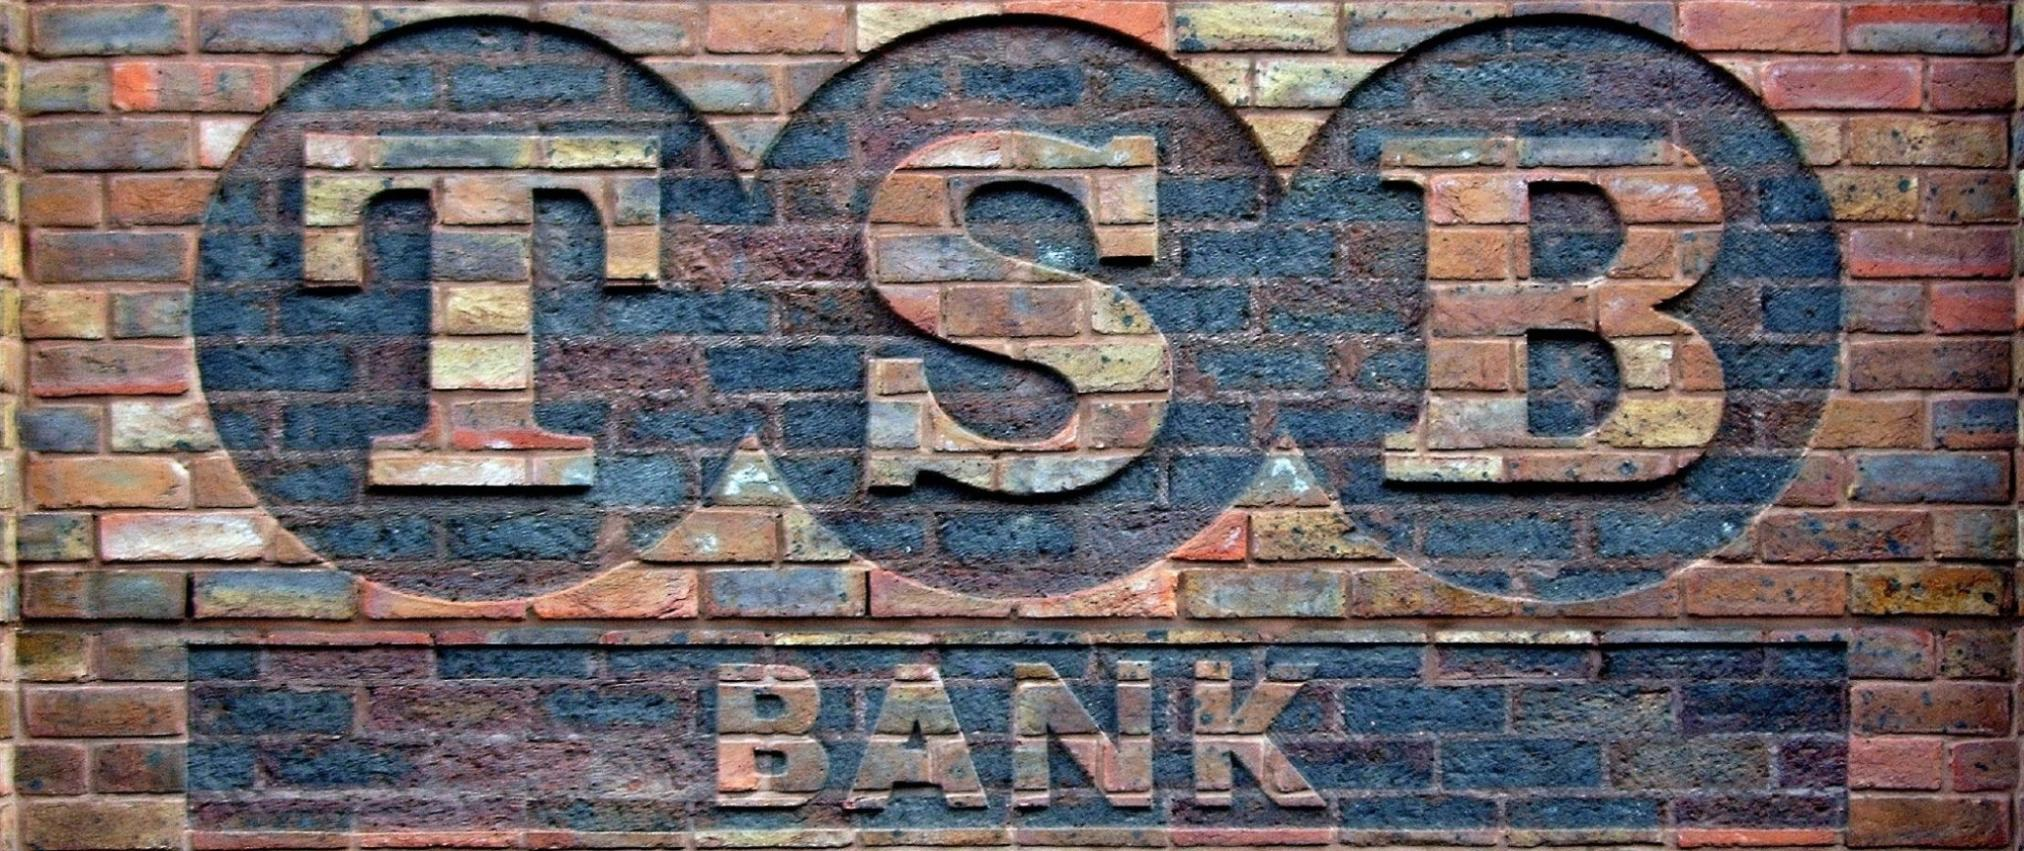 TSB Bank logo printed on a brick wall